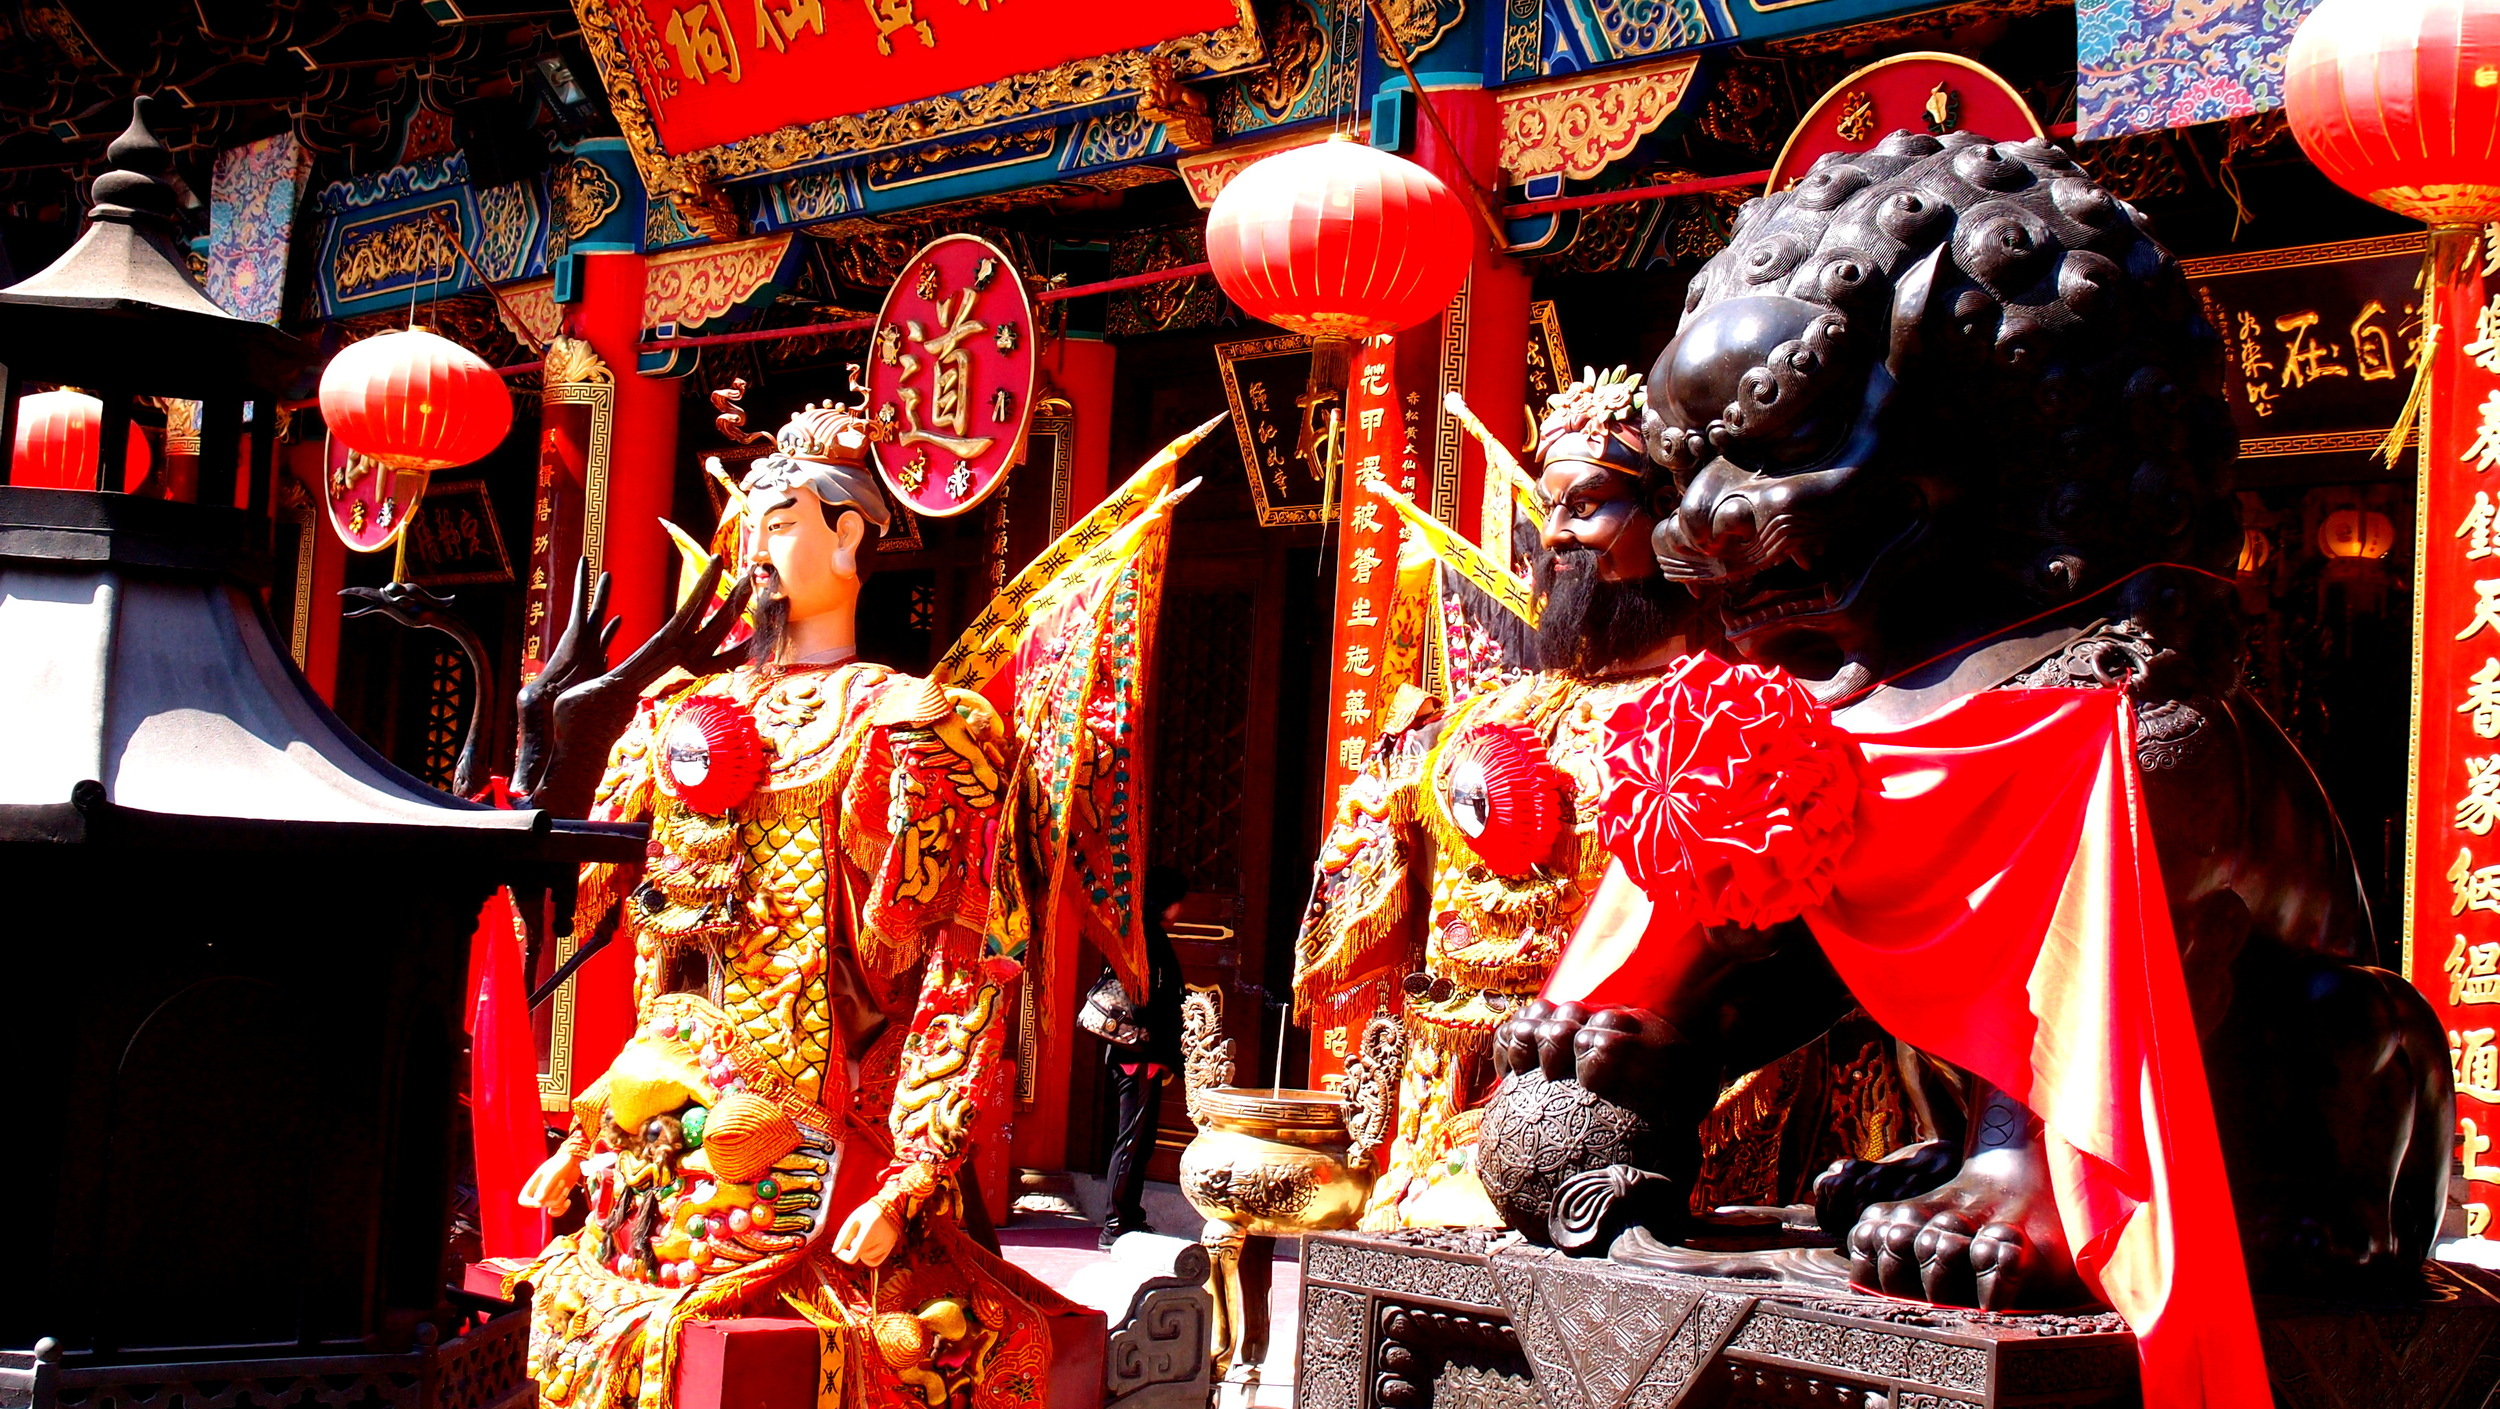 Chinese New Year is coming, the god's are getting fat..... the amazingly colourful Sik Sik Yuen Wong Tai Sin Temple